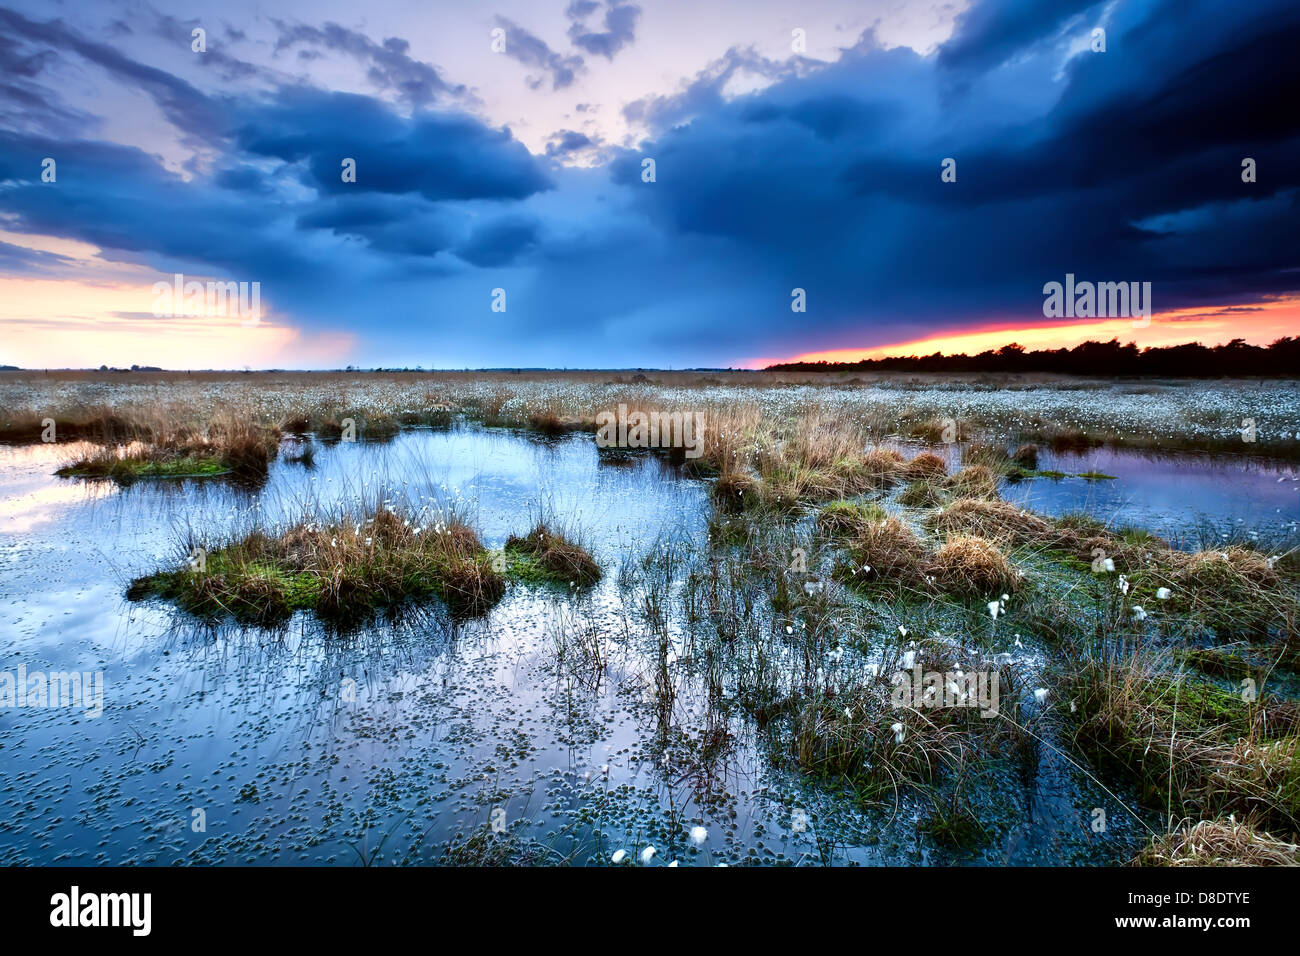 flowering cottongrass on swamp at sunset during storm, Drenthe - Stock Image